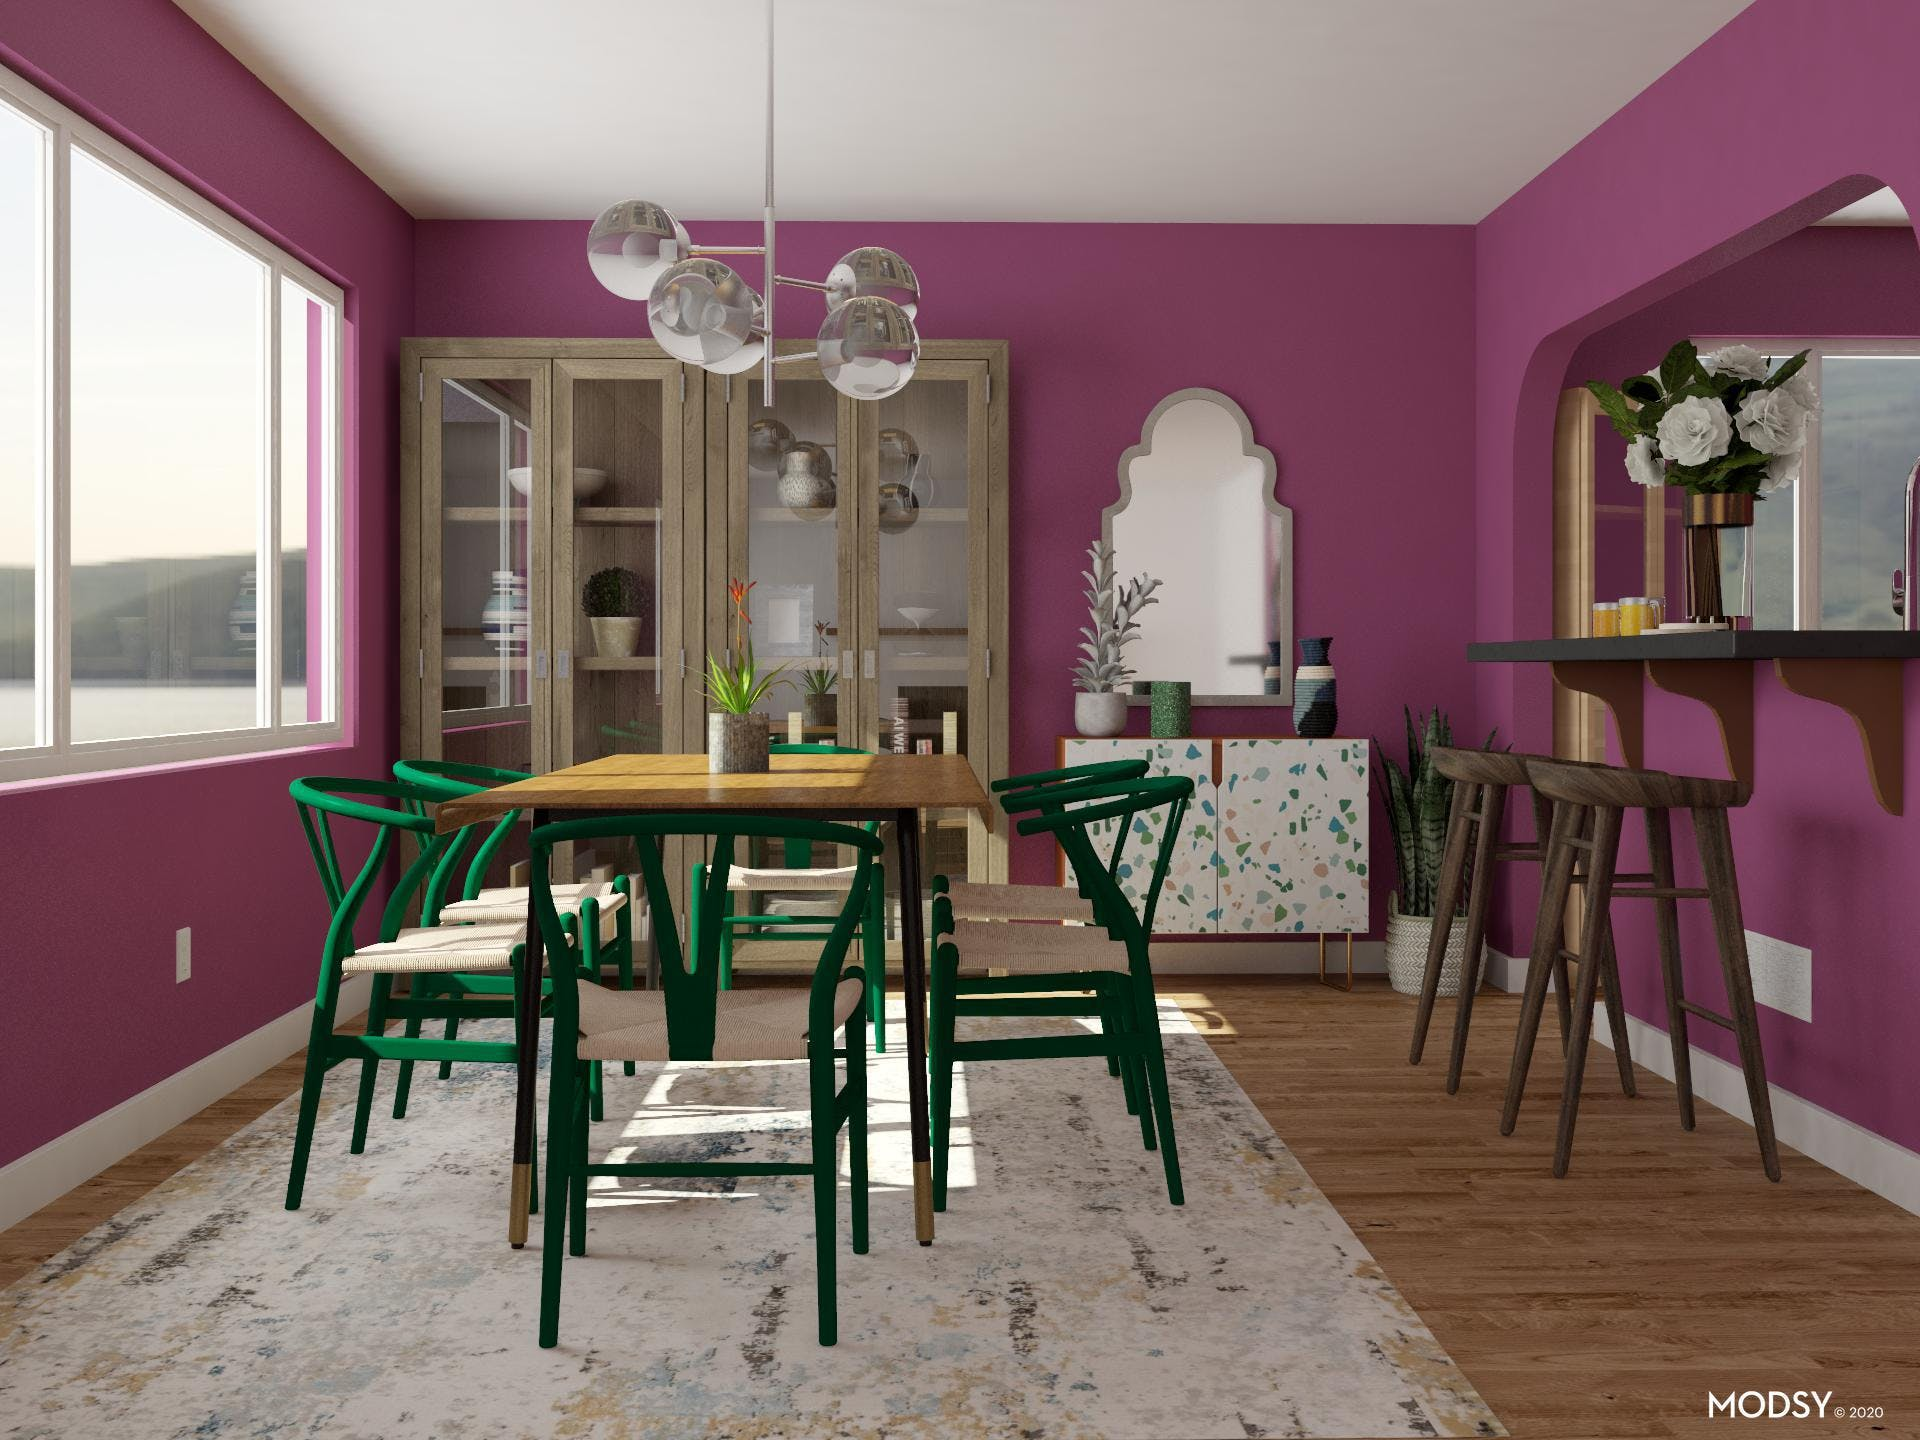 Unexpected Jewel Tones: Dining Room Edition